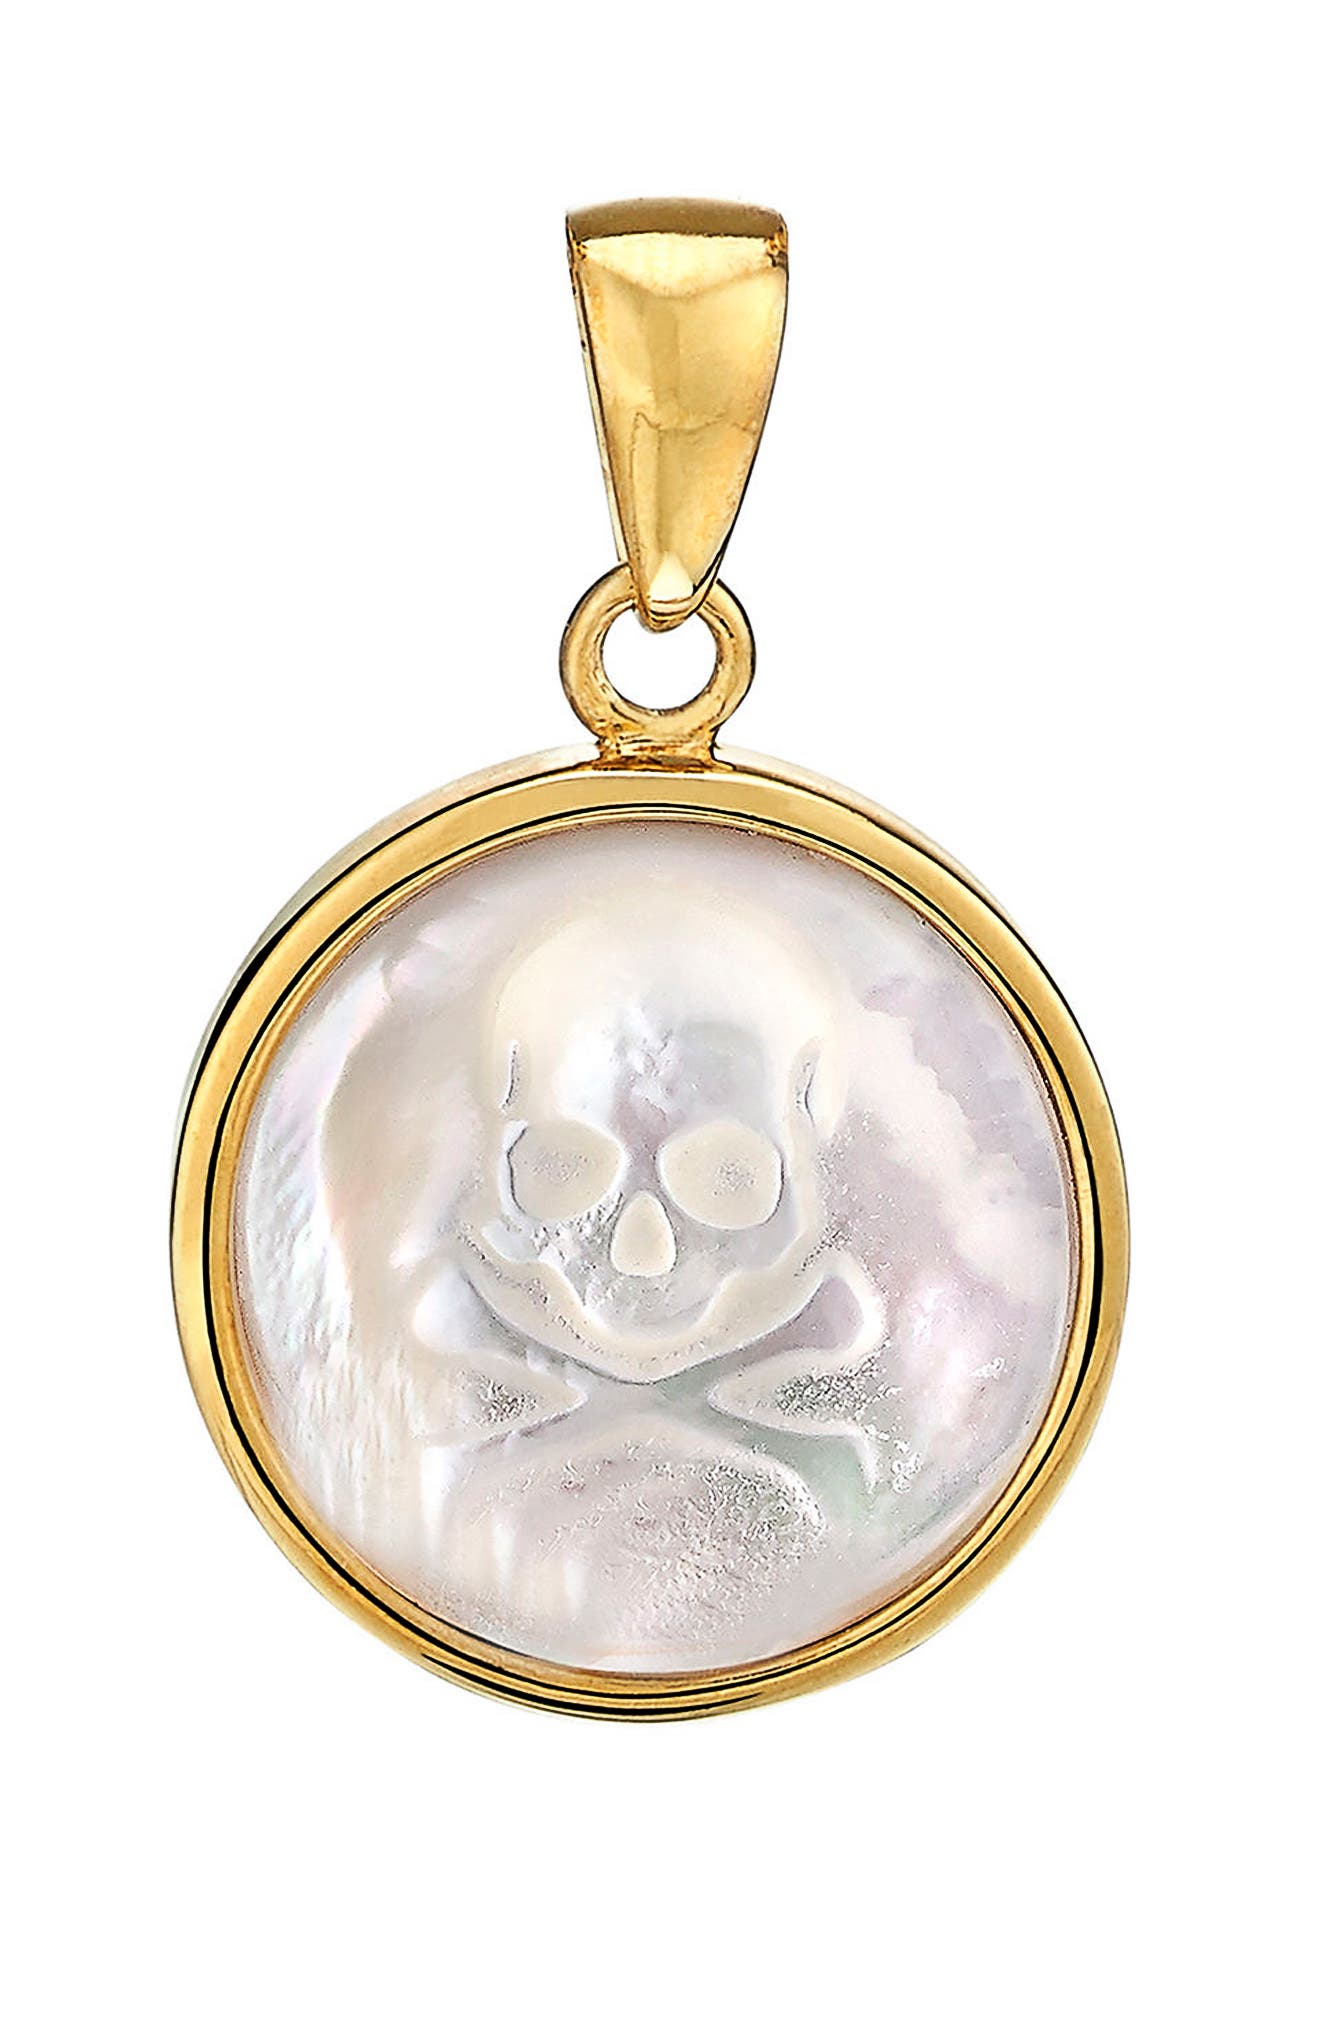 Skull Mother-of-Pearl Charm,                         Main,                         color, Gold - Mother Of Pearl